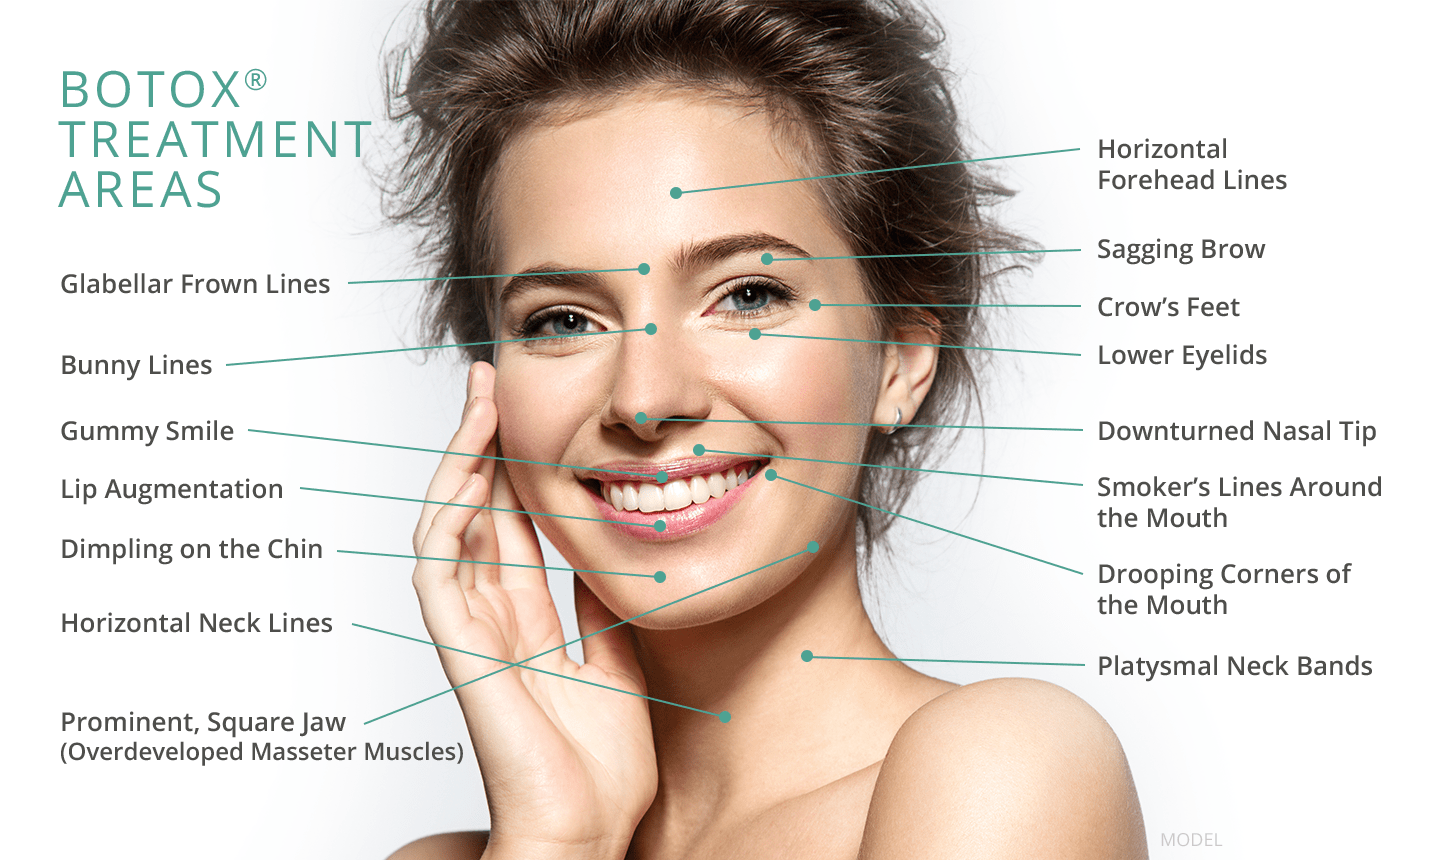 botox injections price in india